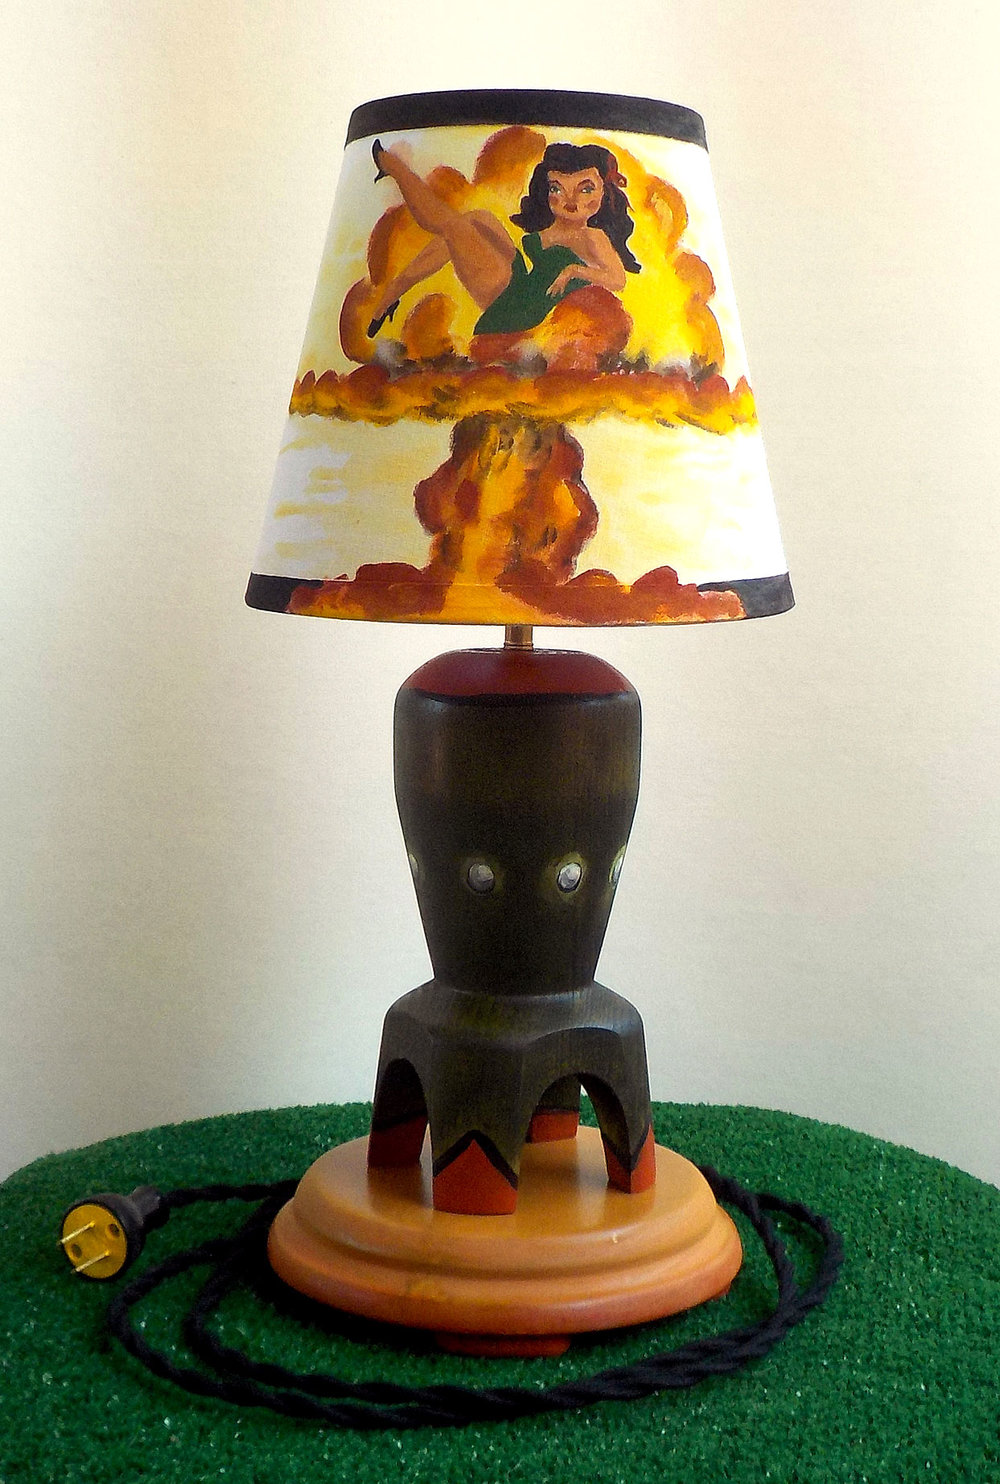 Painted shade with a bombshell pinup girl in a nuclear blast explosion. The base is made of Poplar wood turned on the lathe in the shape of a bomb and hand stained and painted.